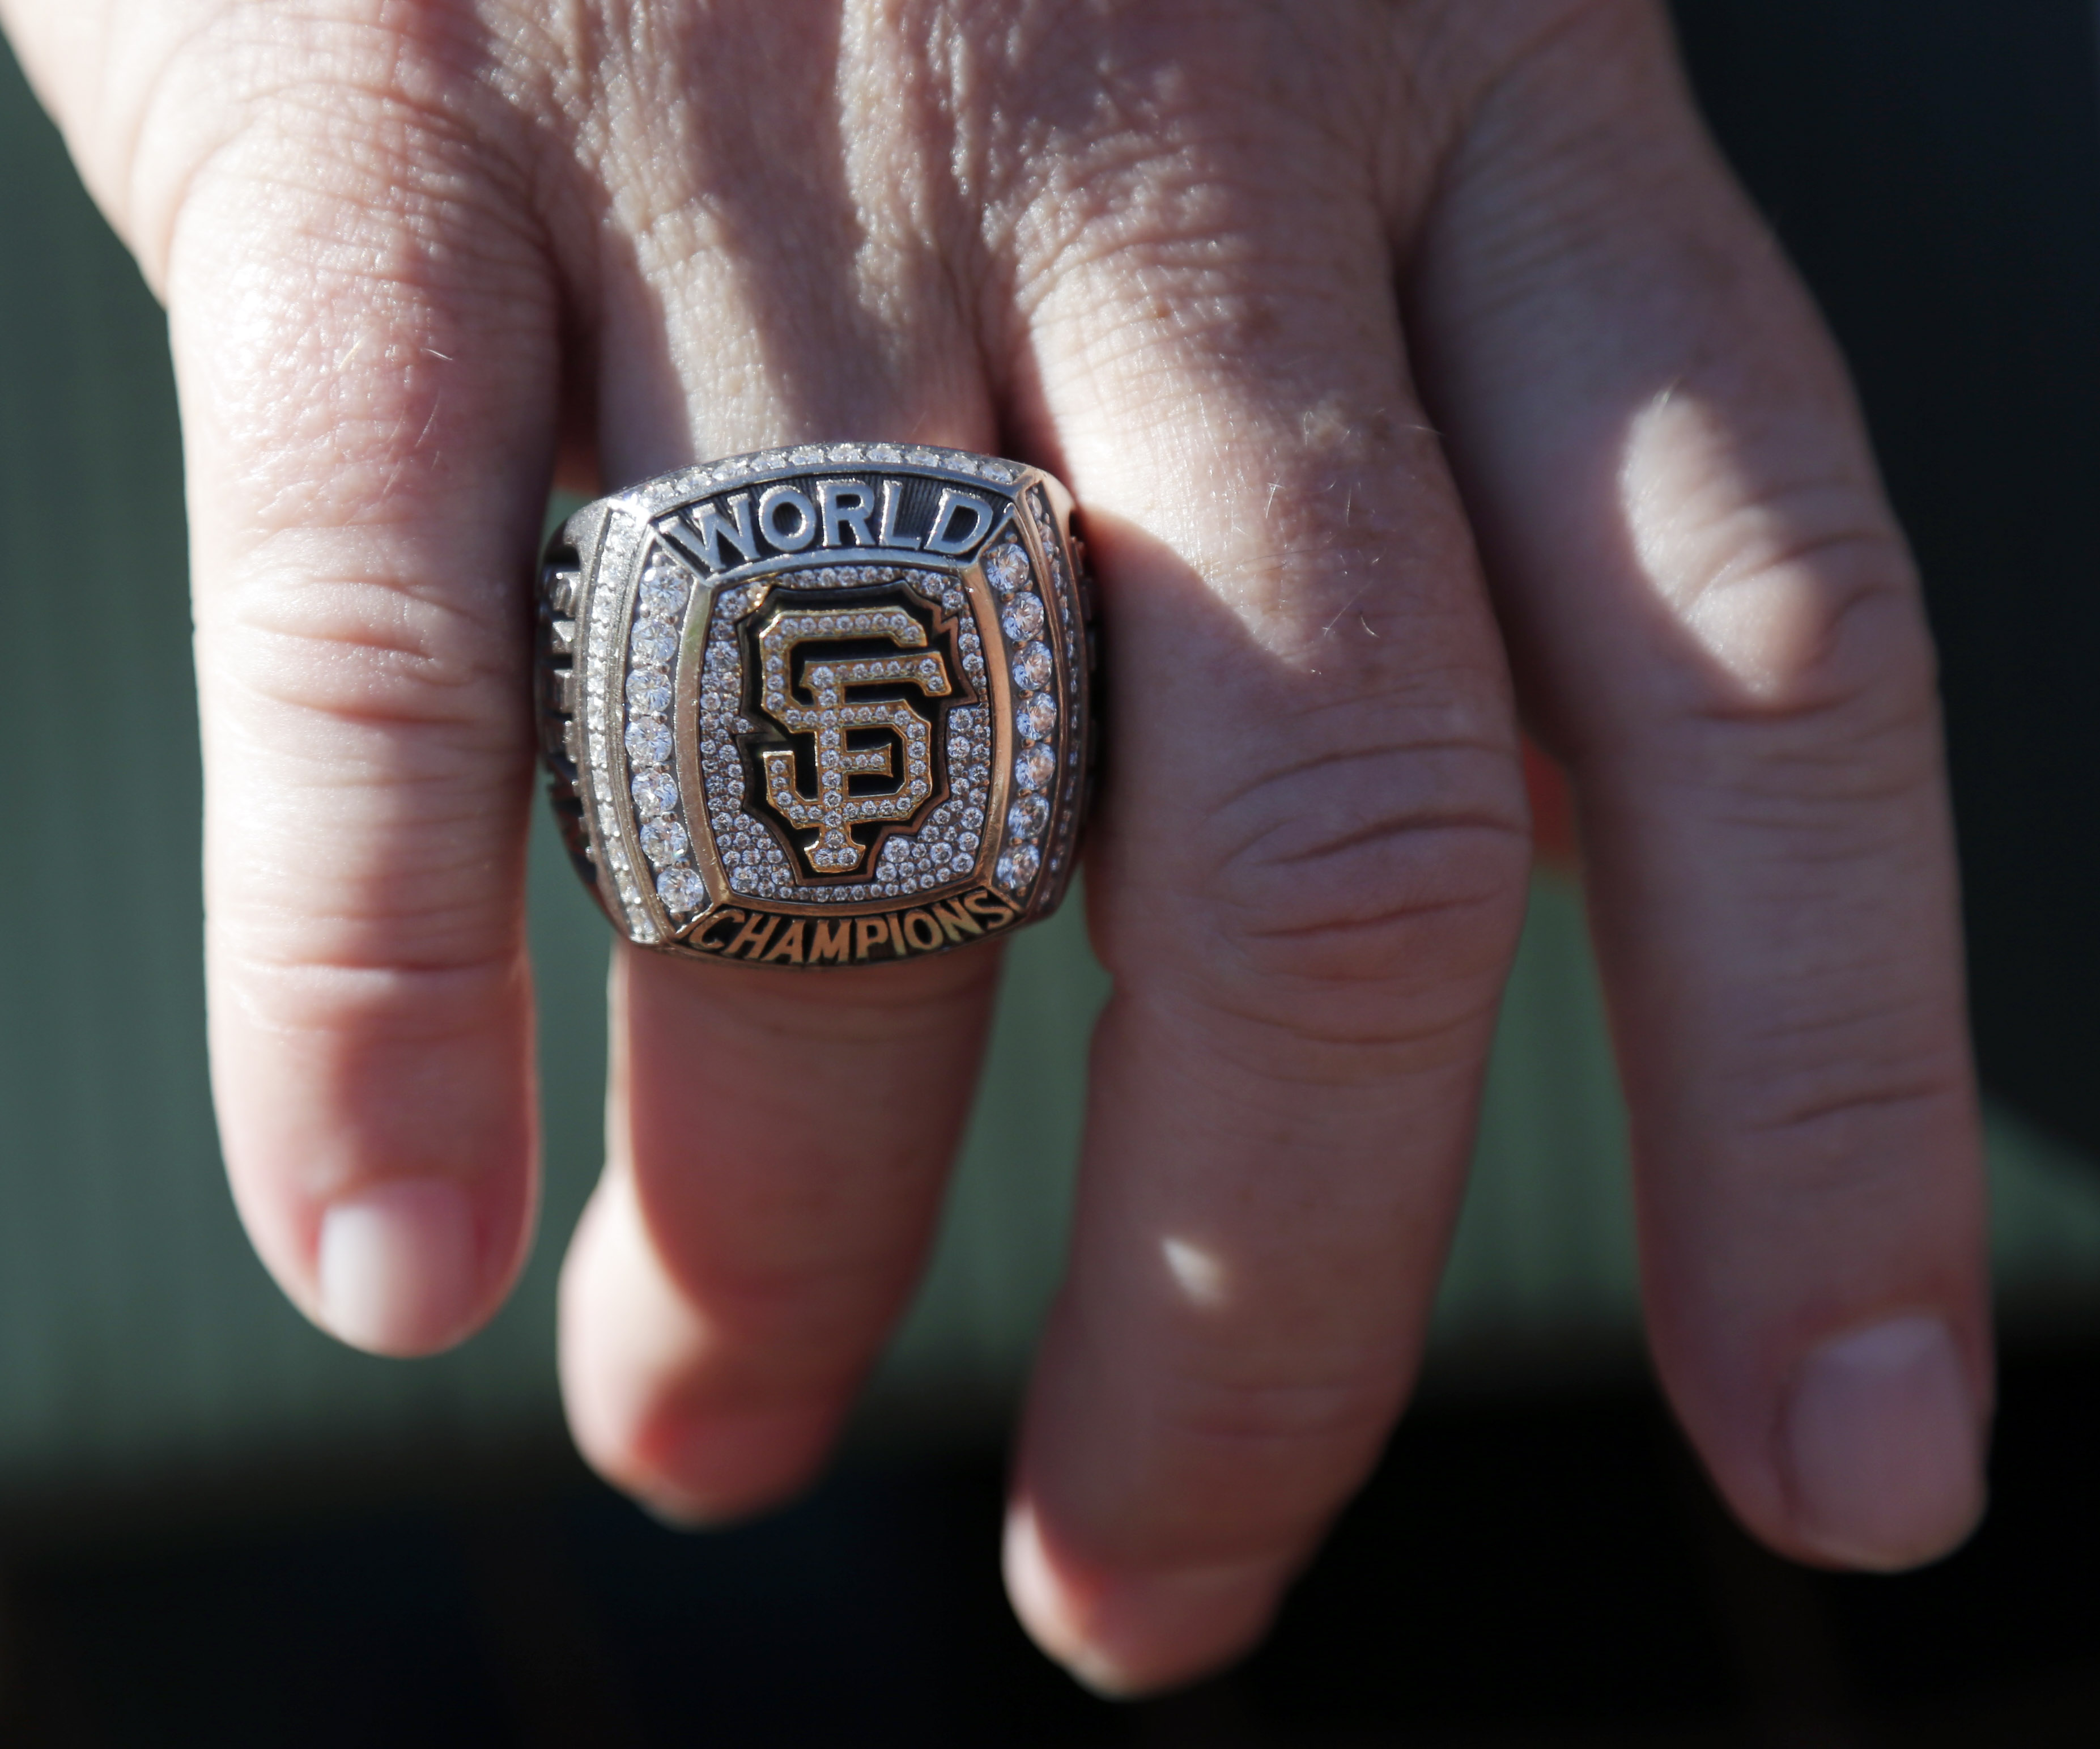 <div class='meta'><div class='origin-logo' data-origin='AP'></div><span class='caption-text' data-credit='AP Photo/Marcio Jose Sanchez'>San Francisco Giants general manager Brian Sabean wears a World Series championship ring as the team works out on Saturday, Oct. 18, 2014, in San Francisco.</span></div>